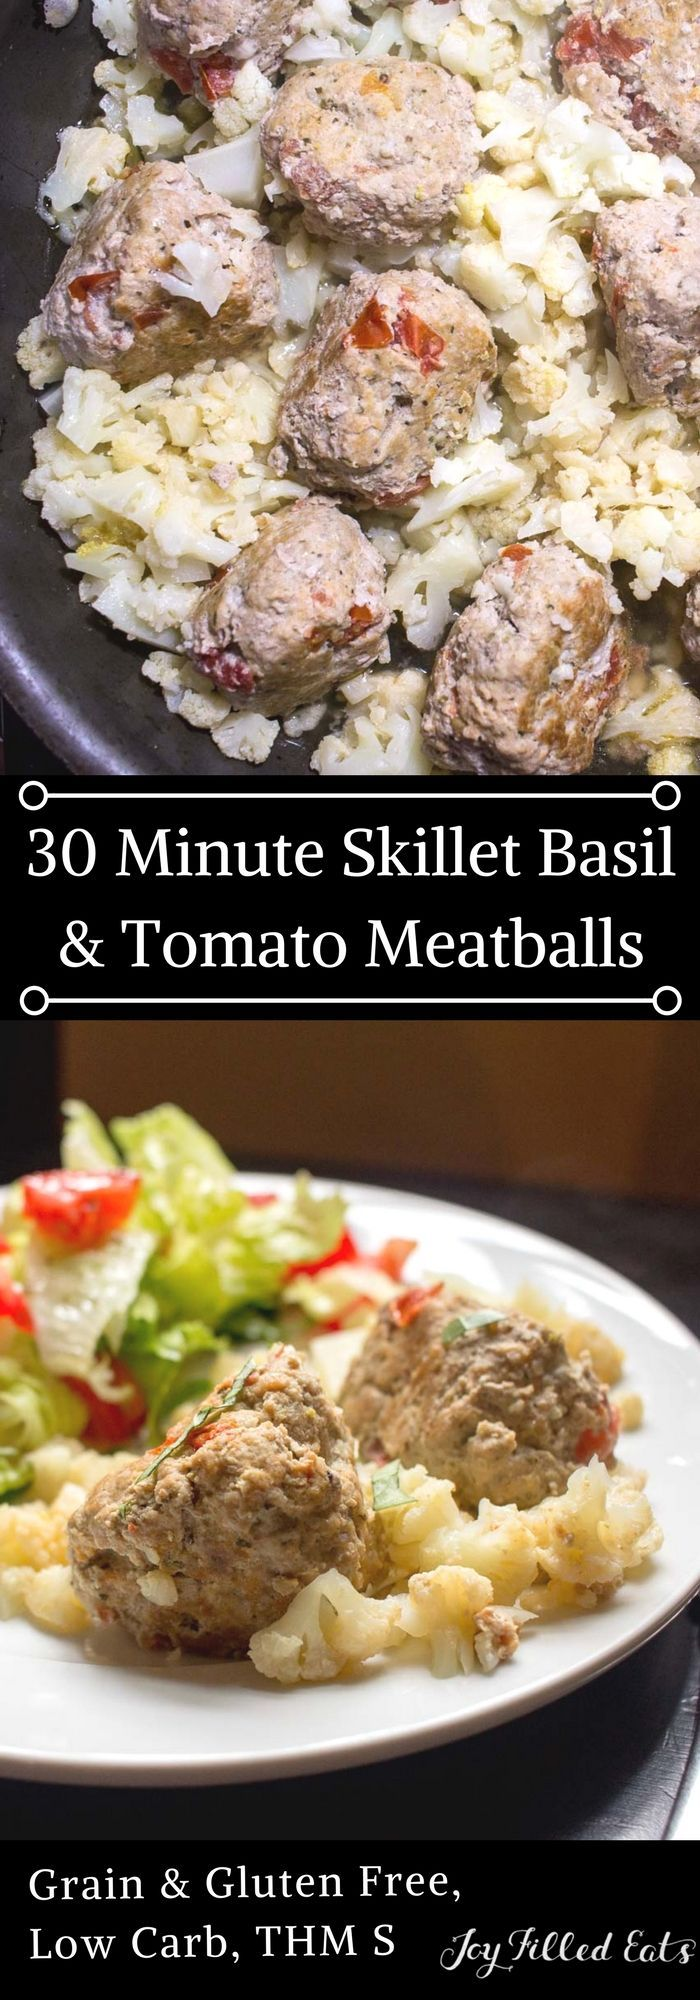 Skillet Basil & Tomato Meatballs - Low Carb, Grain & Gluten Free, THM S - Skillet Basil & Tomato Meatballs are a perfect one pan thirty-minute meal. They are moist, flavorful, and kid approved.        via @joyfilledeats